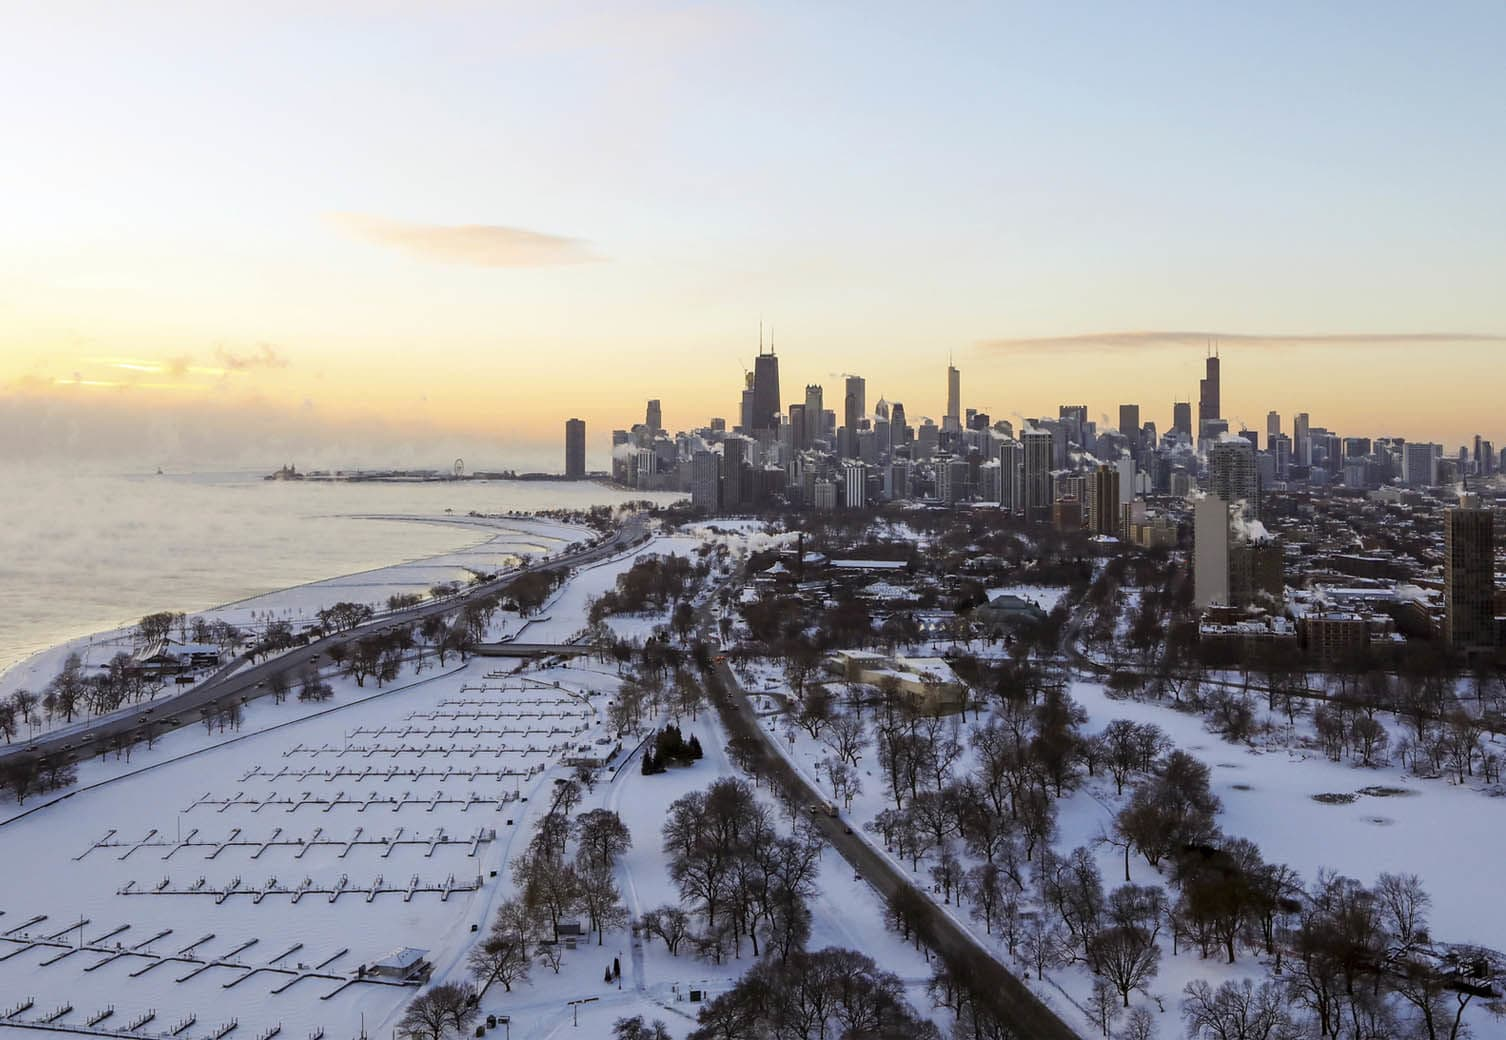 Chicago's lakefront is covered with ice on Wednesday, Jan. 30, 2019.  Temperatures are plummeting in Chicago as officials warn against venturing out into the dangerously cold weather. (AP Photo/Teresa Crawford)